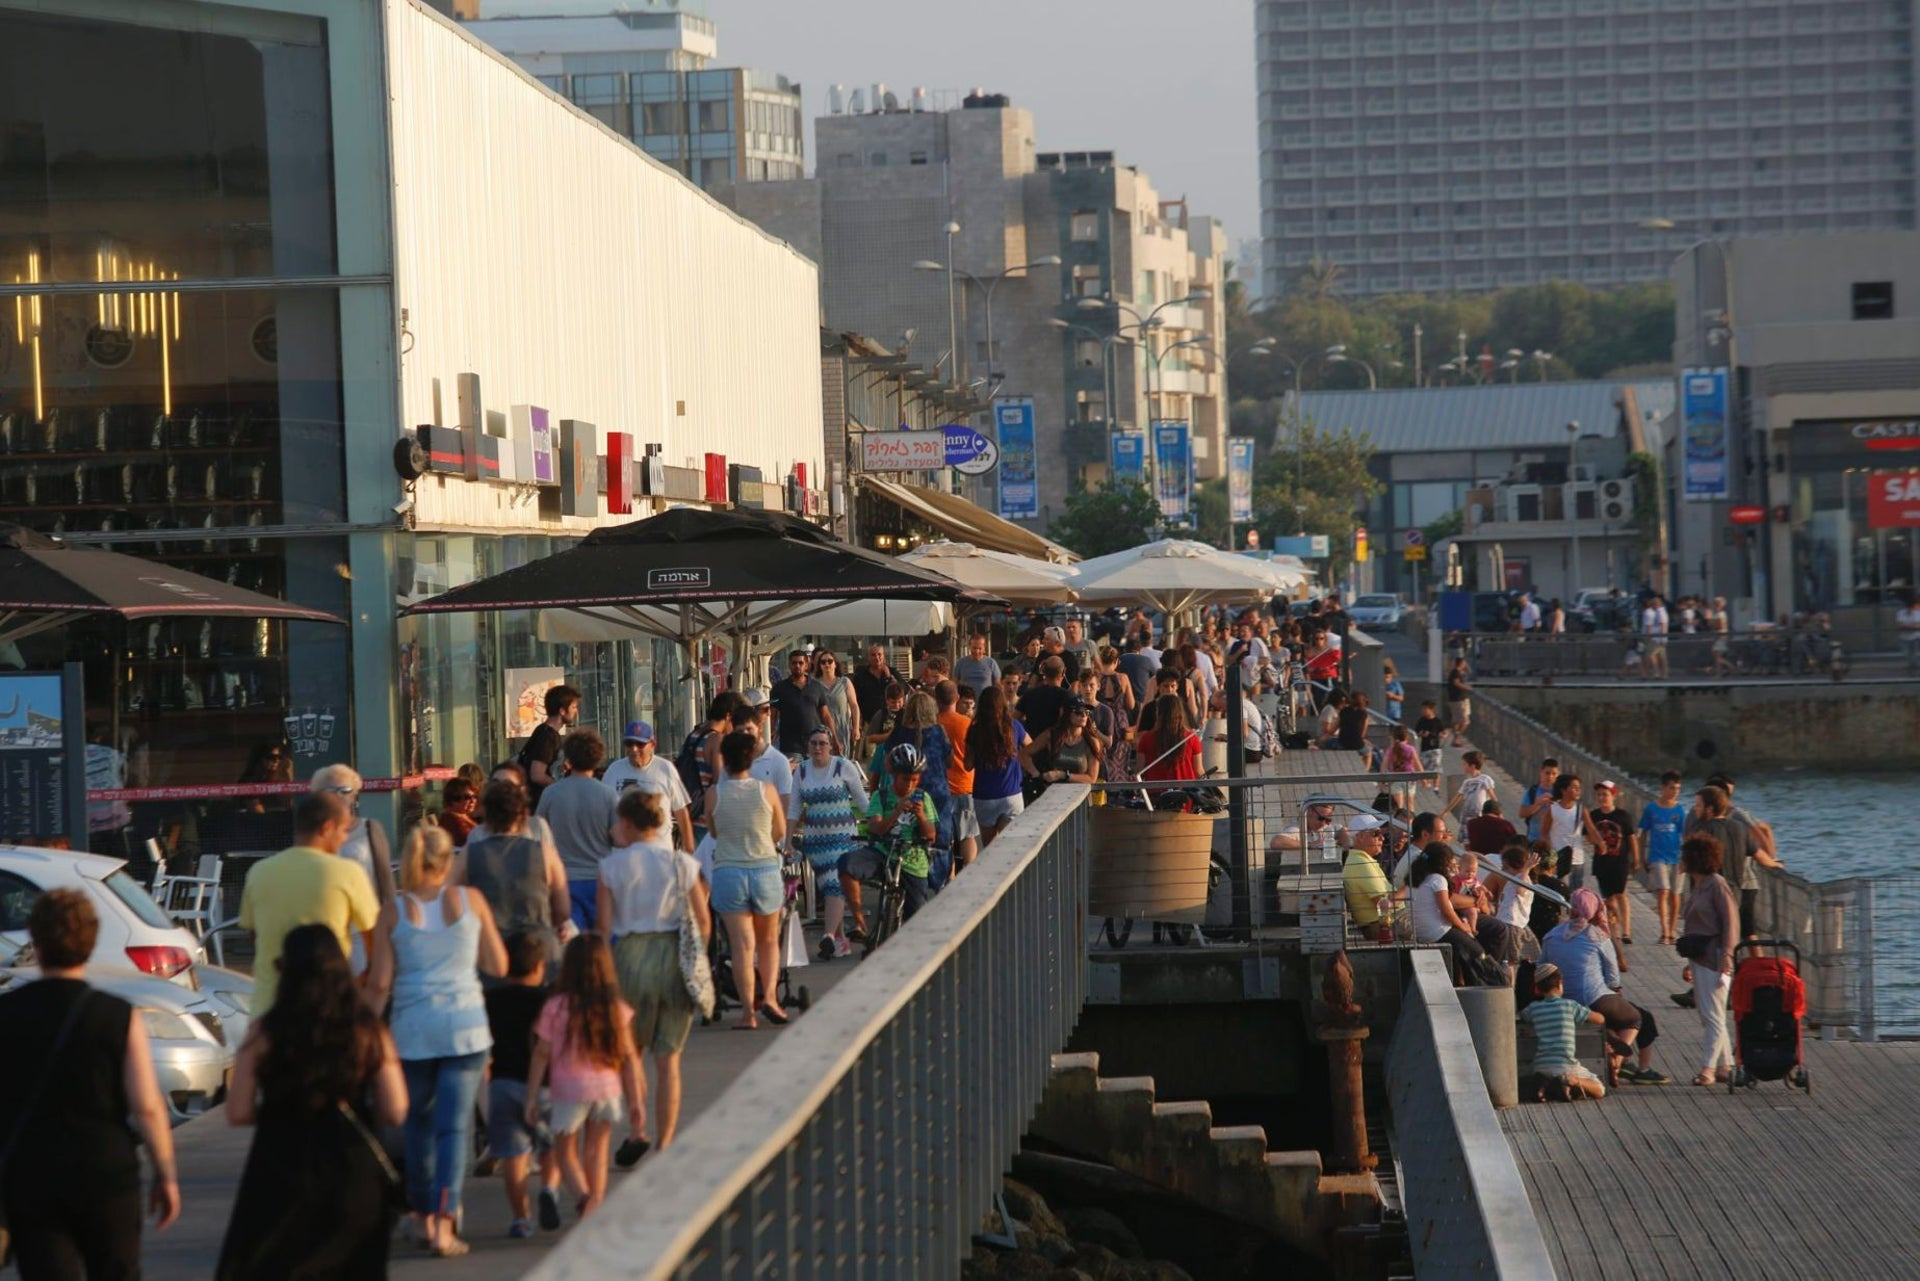 The bustling Tel Aviv Port: One of only three places allowed to open in the city on Shabbat.